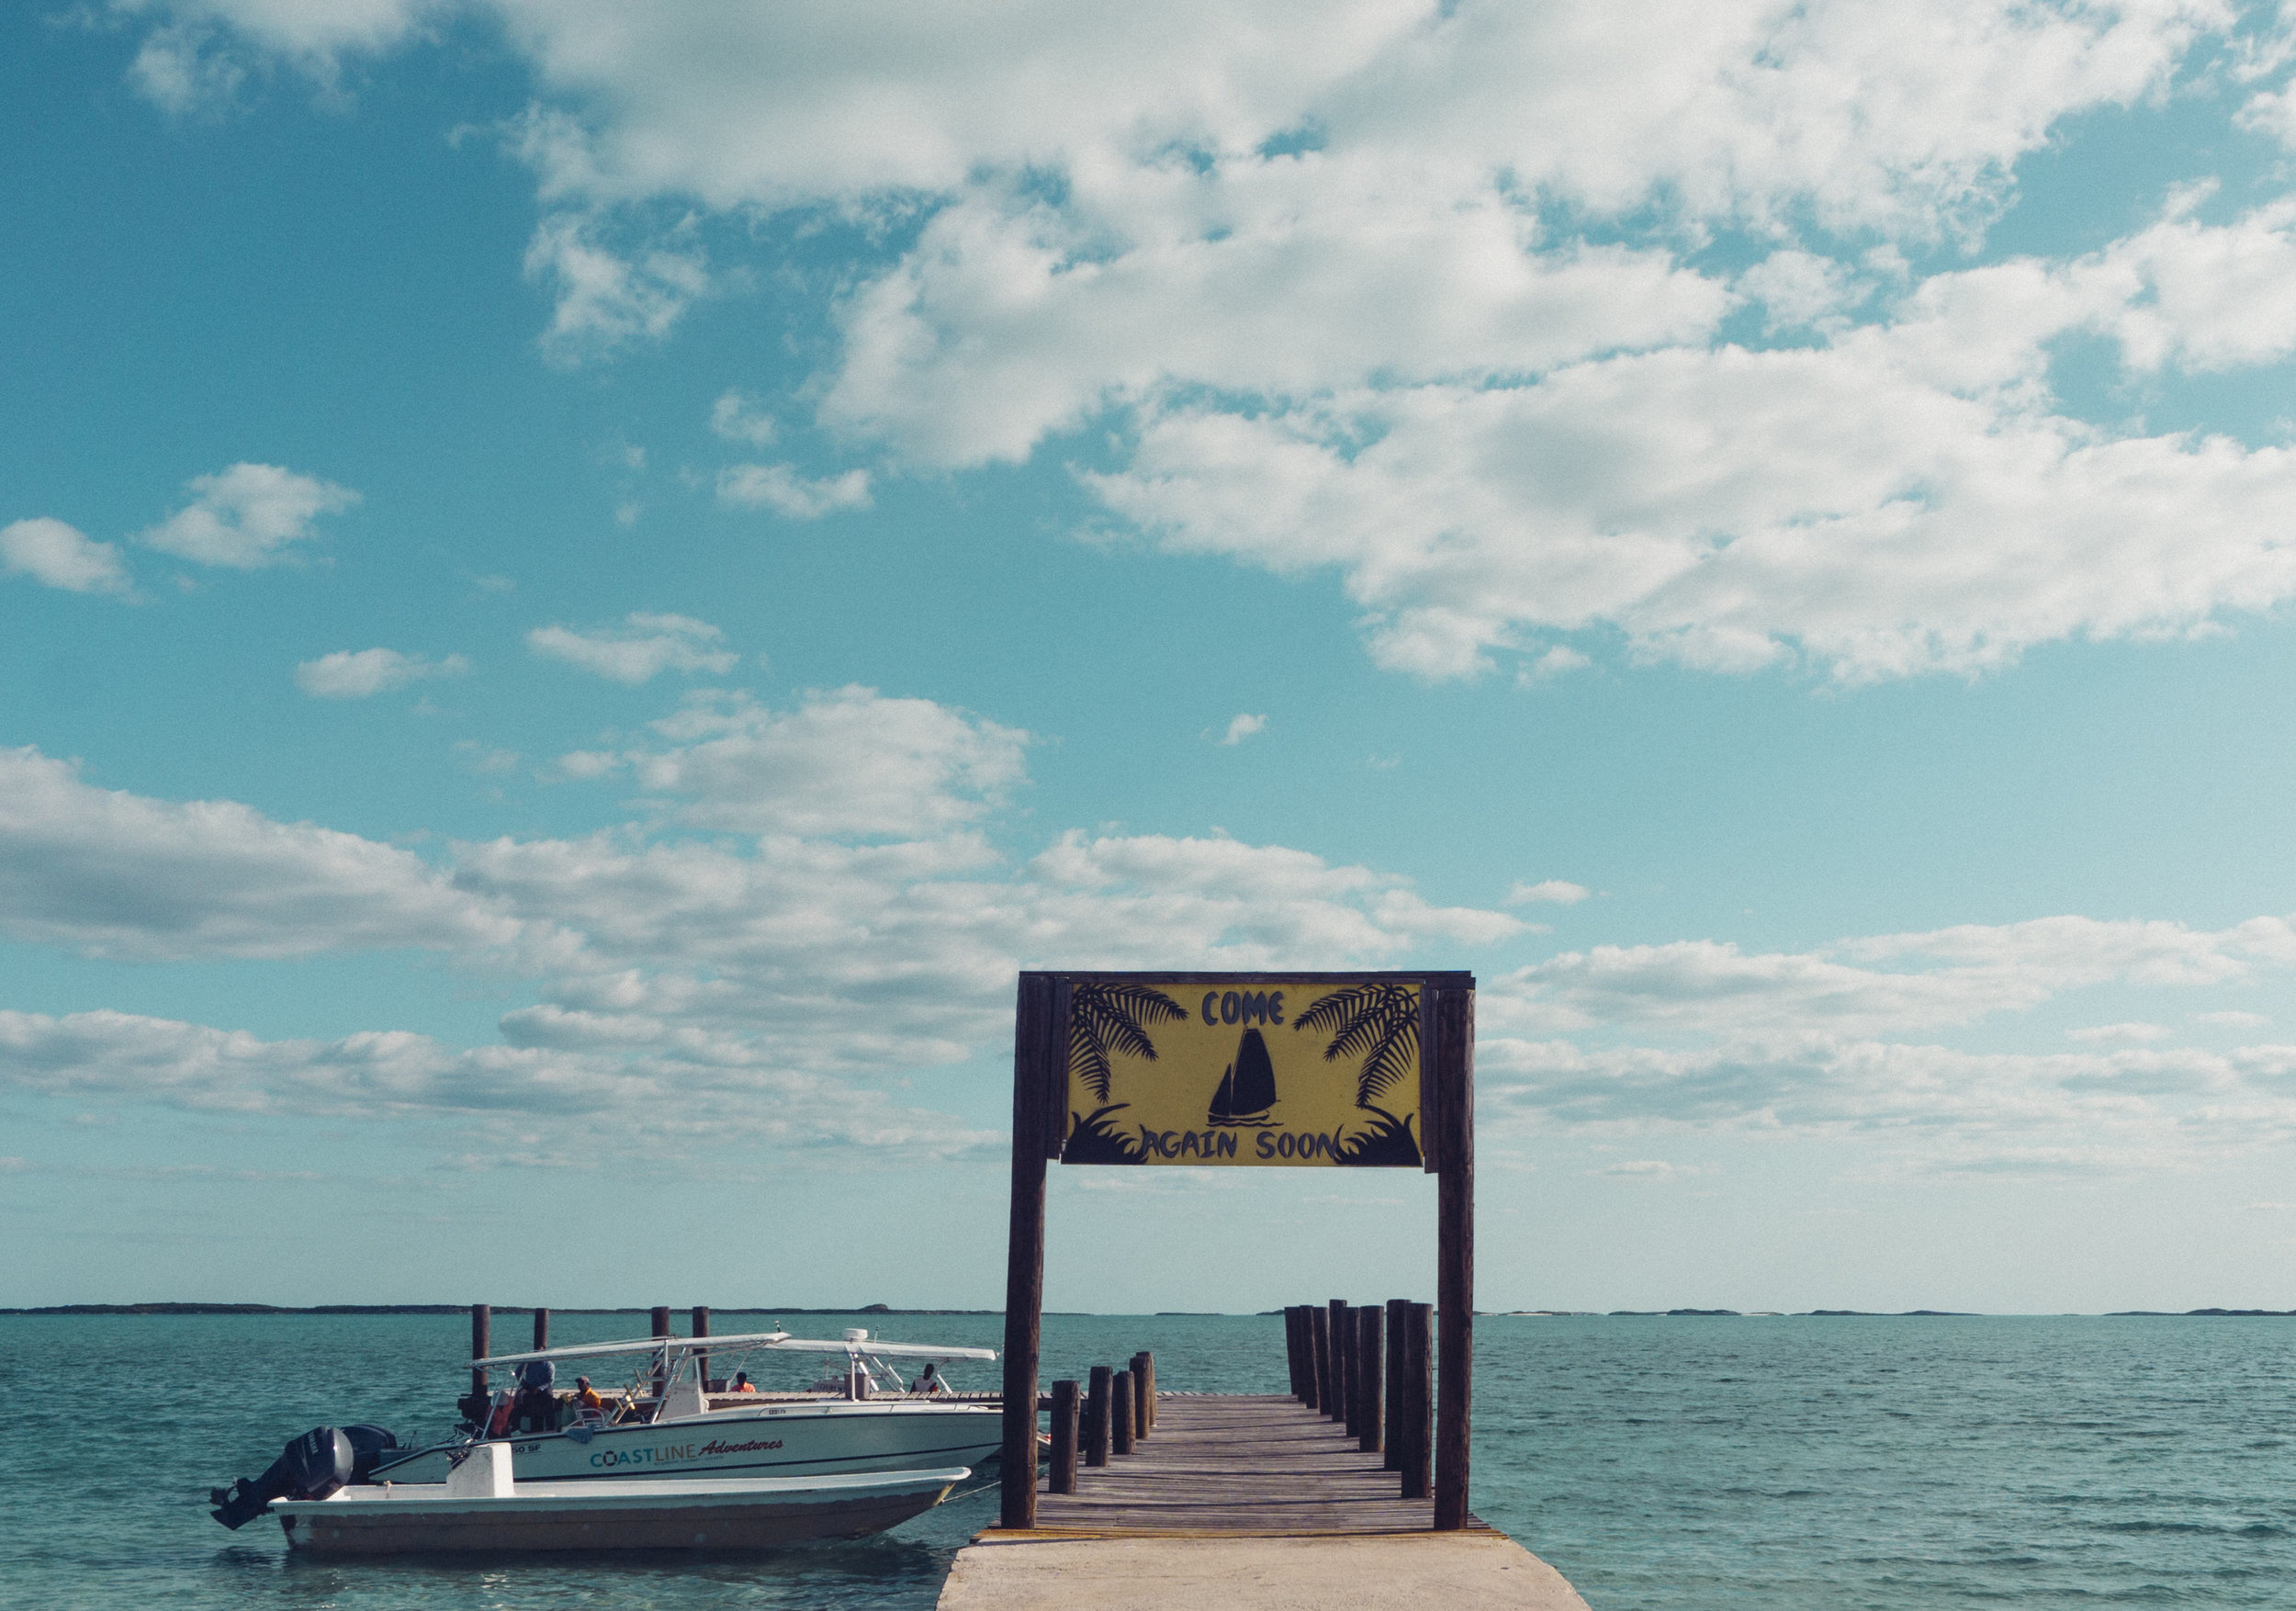 The dock to the boat